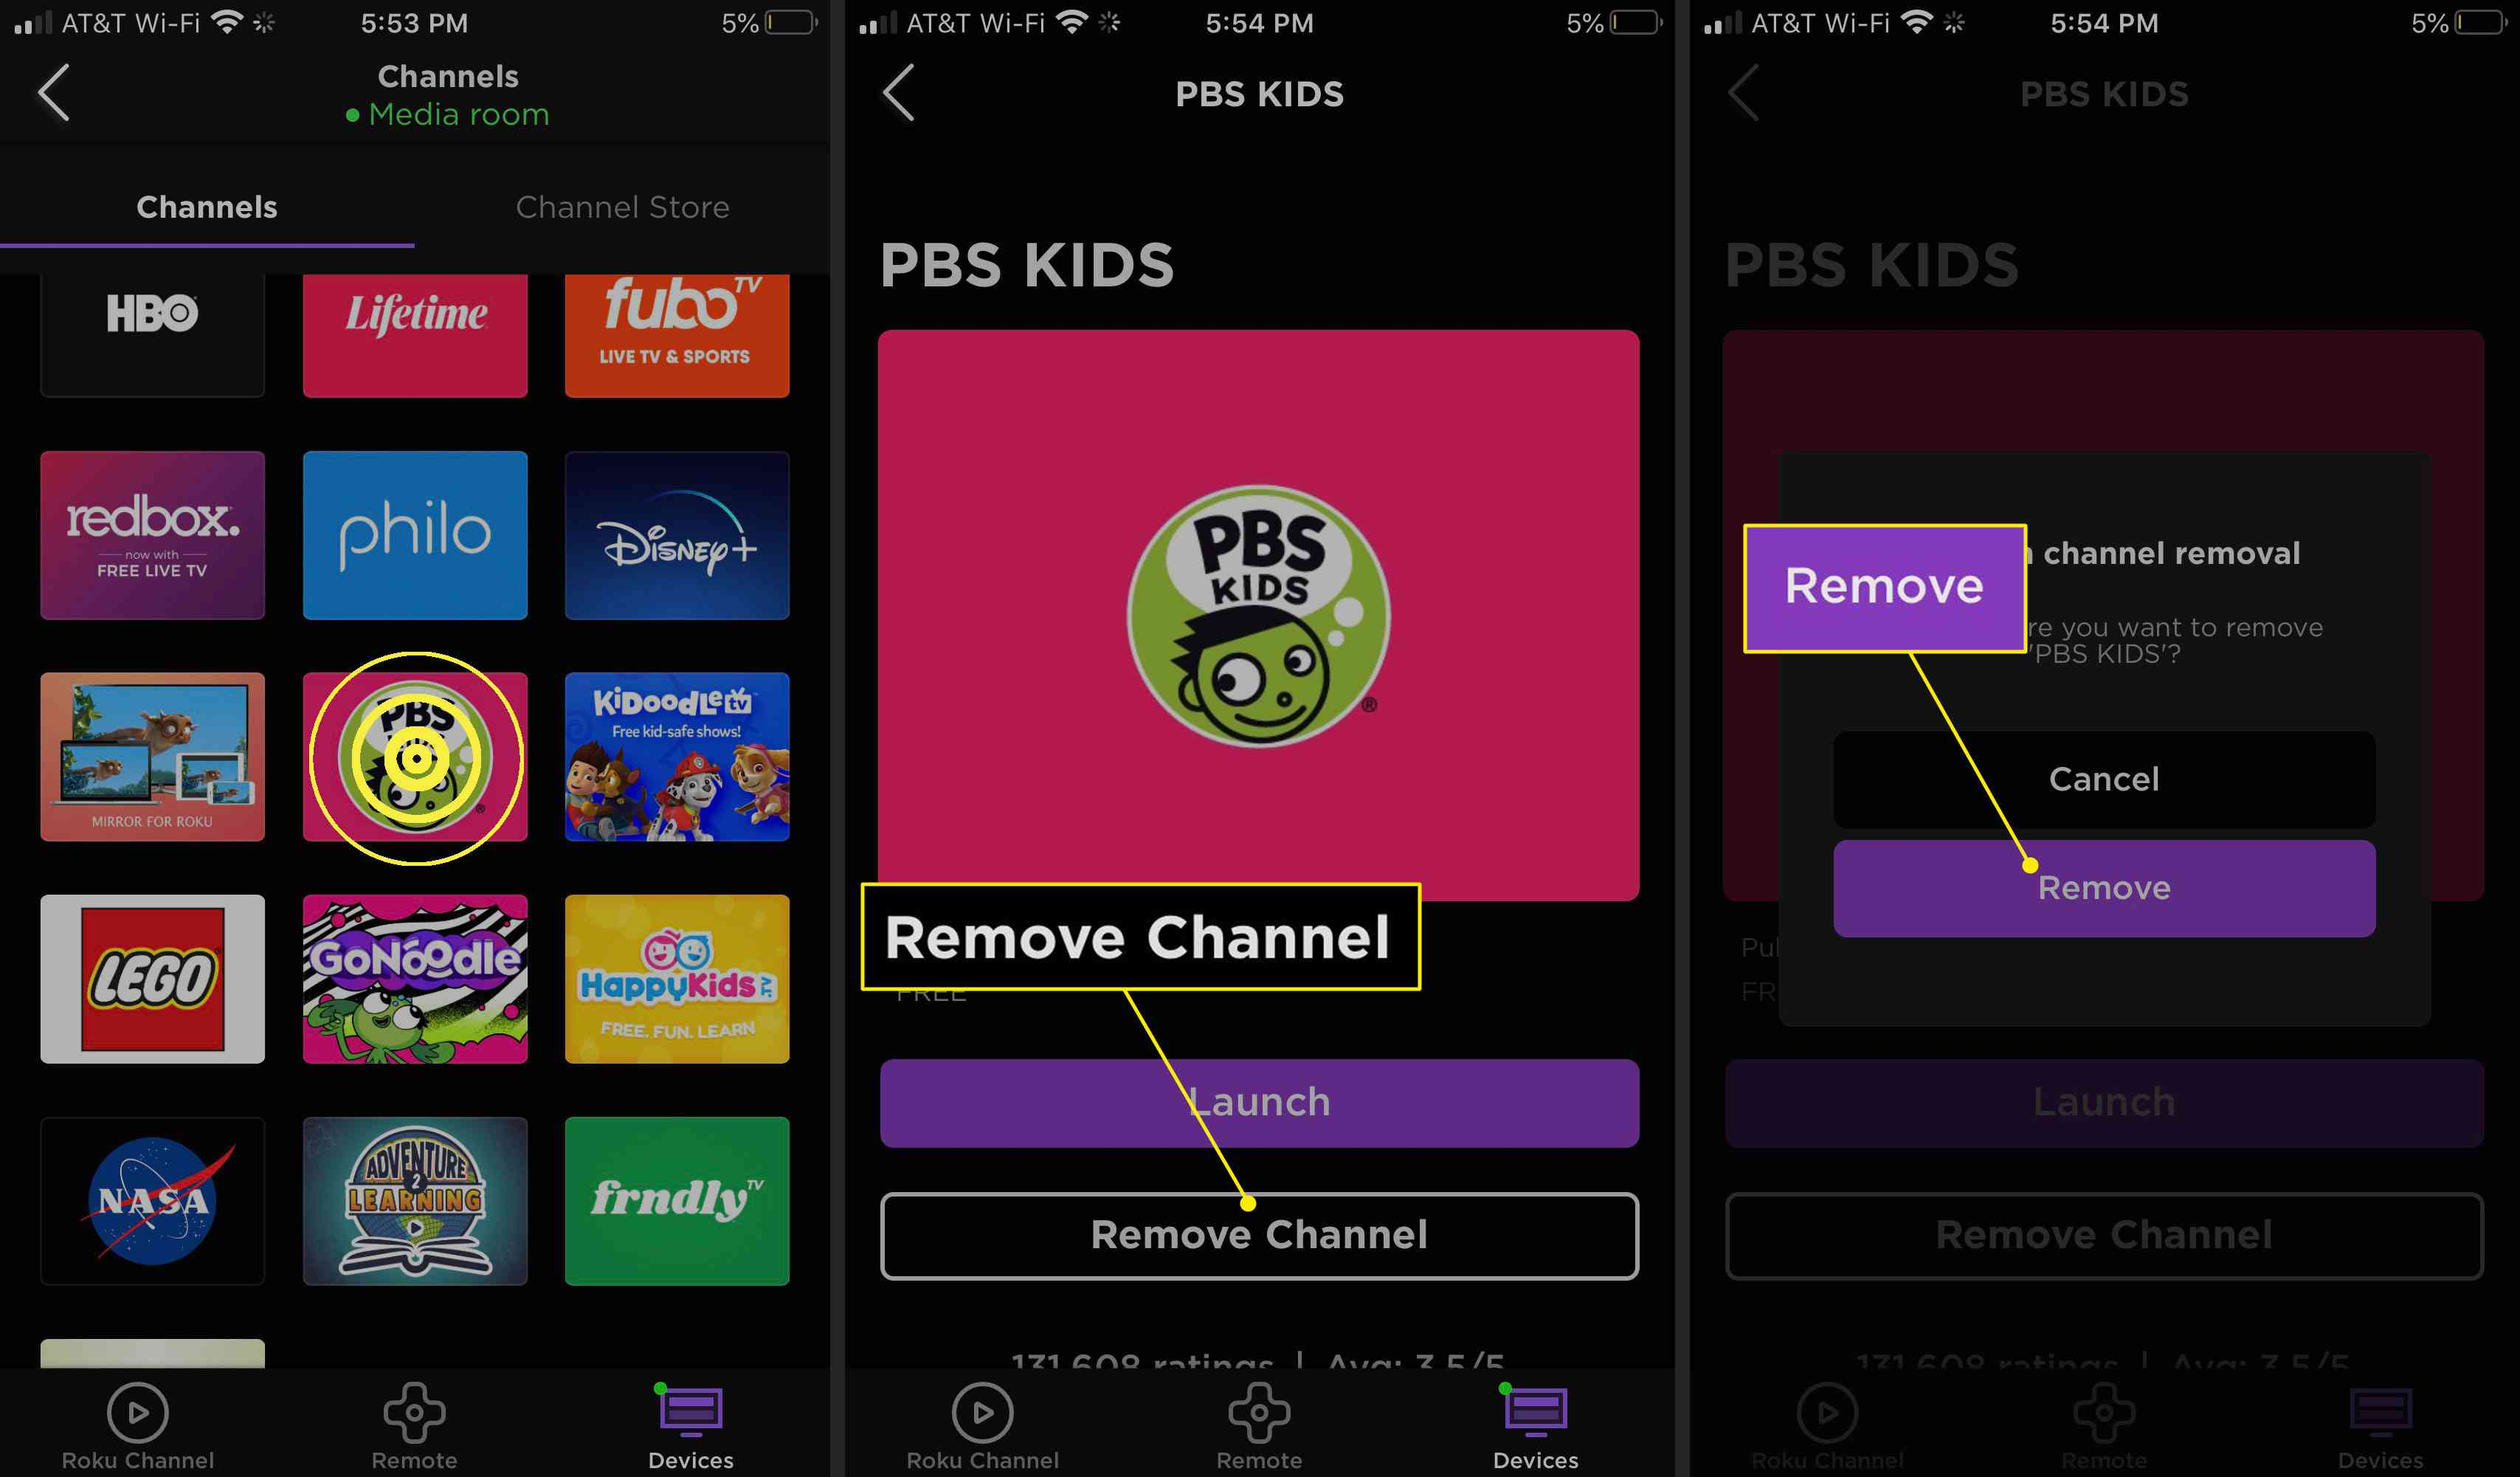 Removing a channel from the Roku app